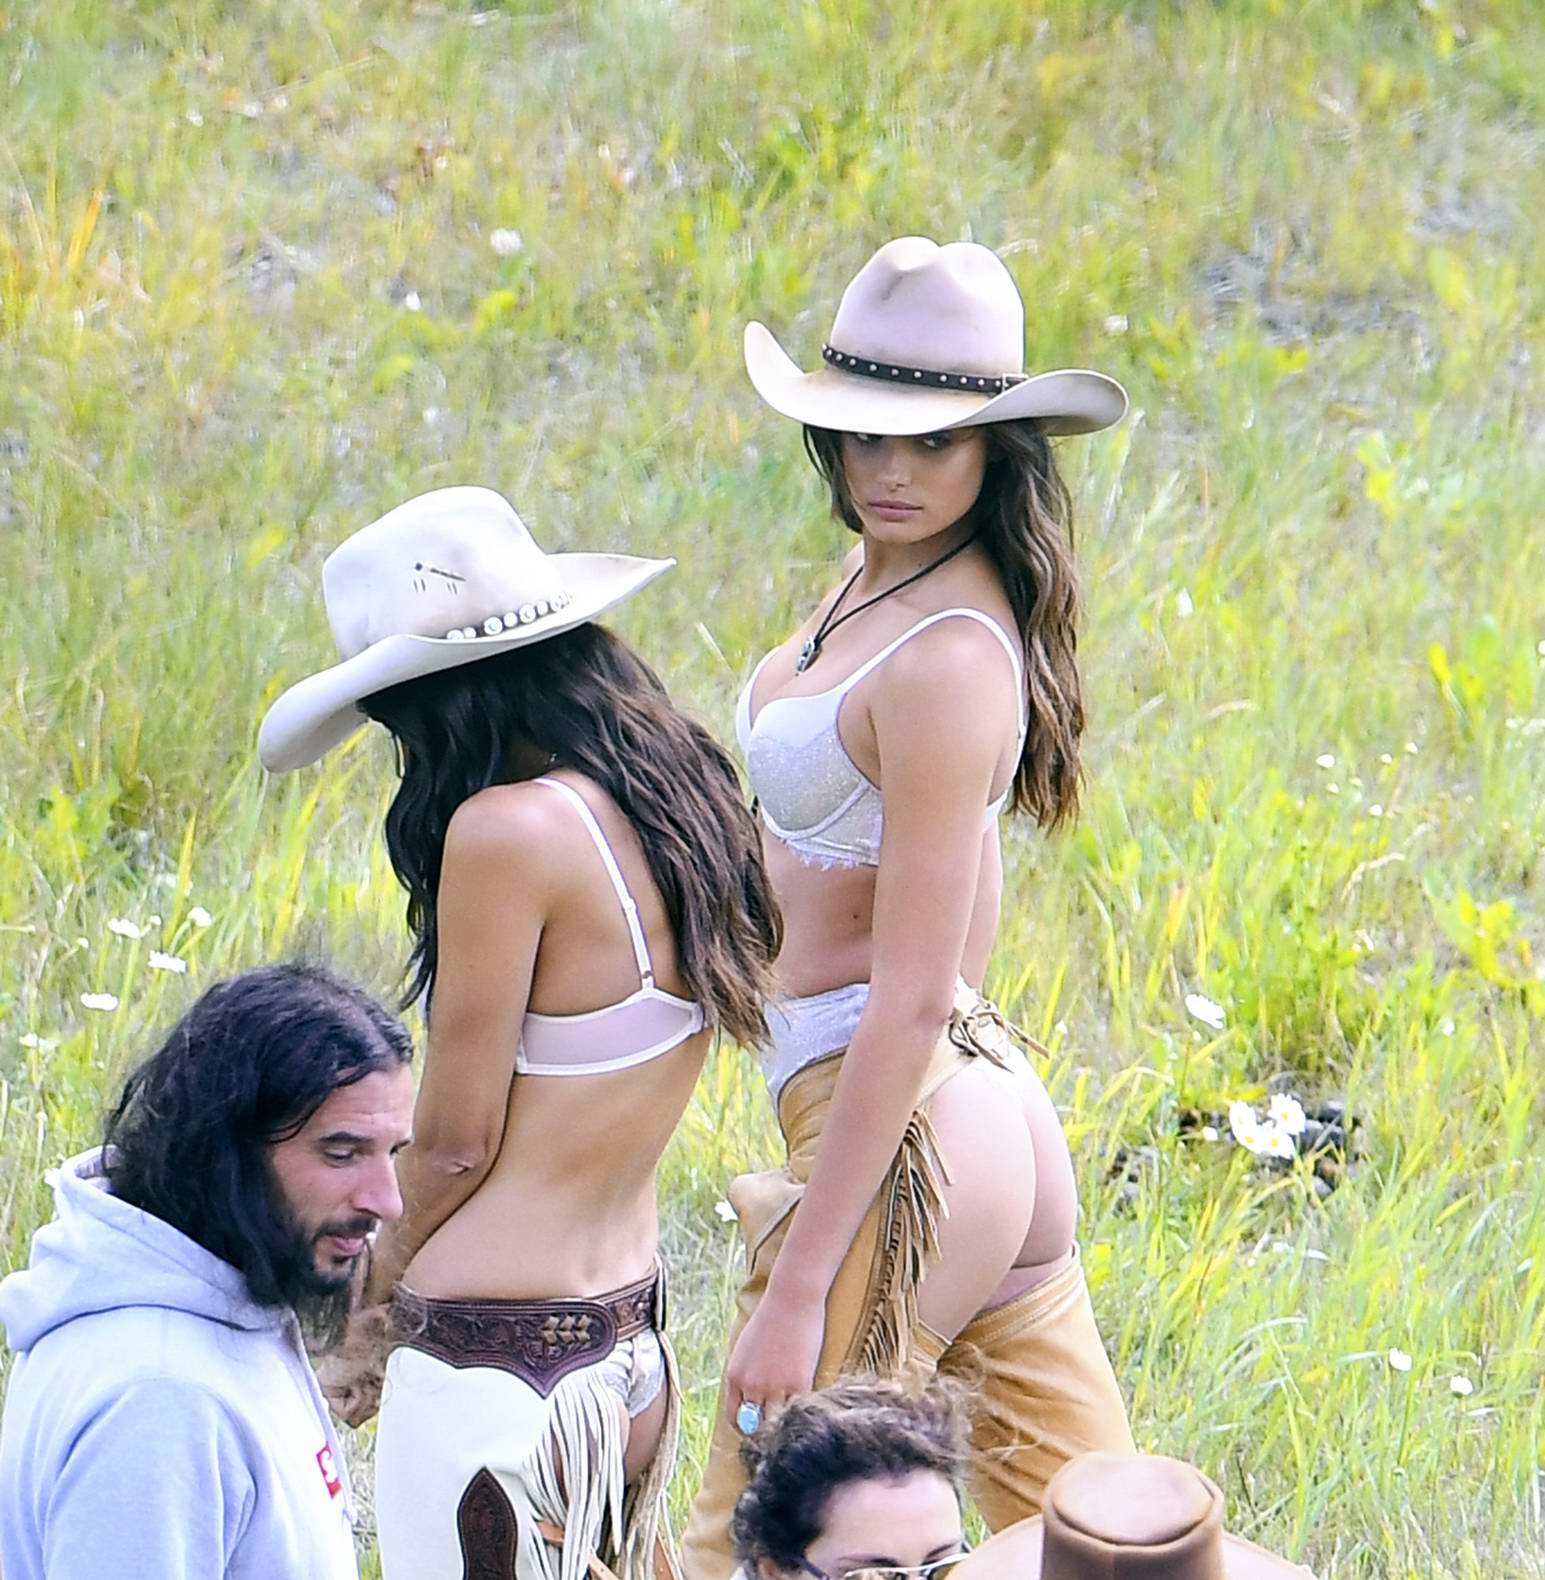 Taylor Hill and Sara Sampaio wearing a cowboy outfit while shooting for Victoria's Secret in Aspen, Colorado